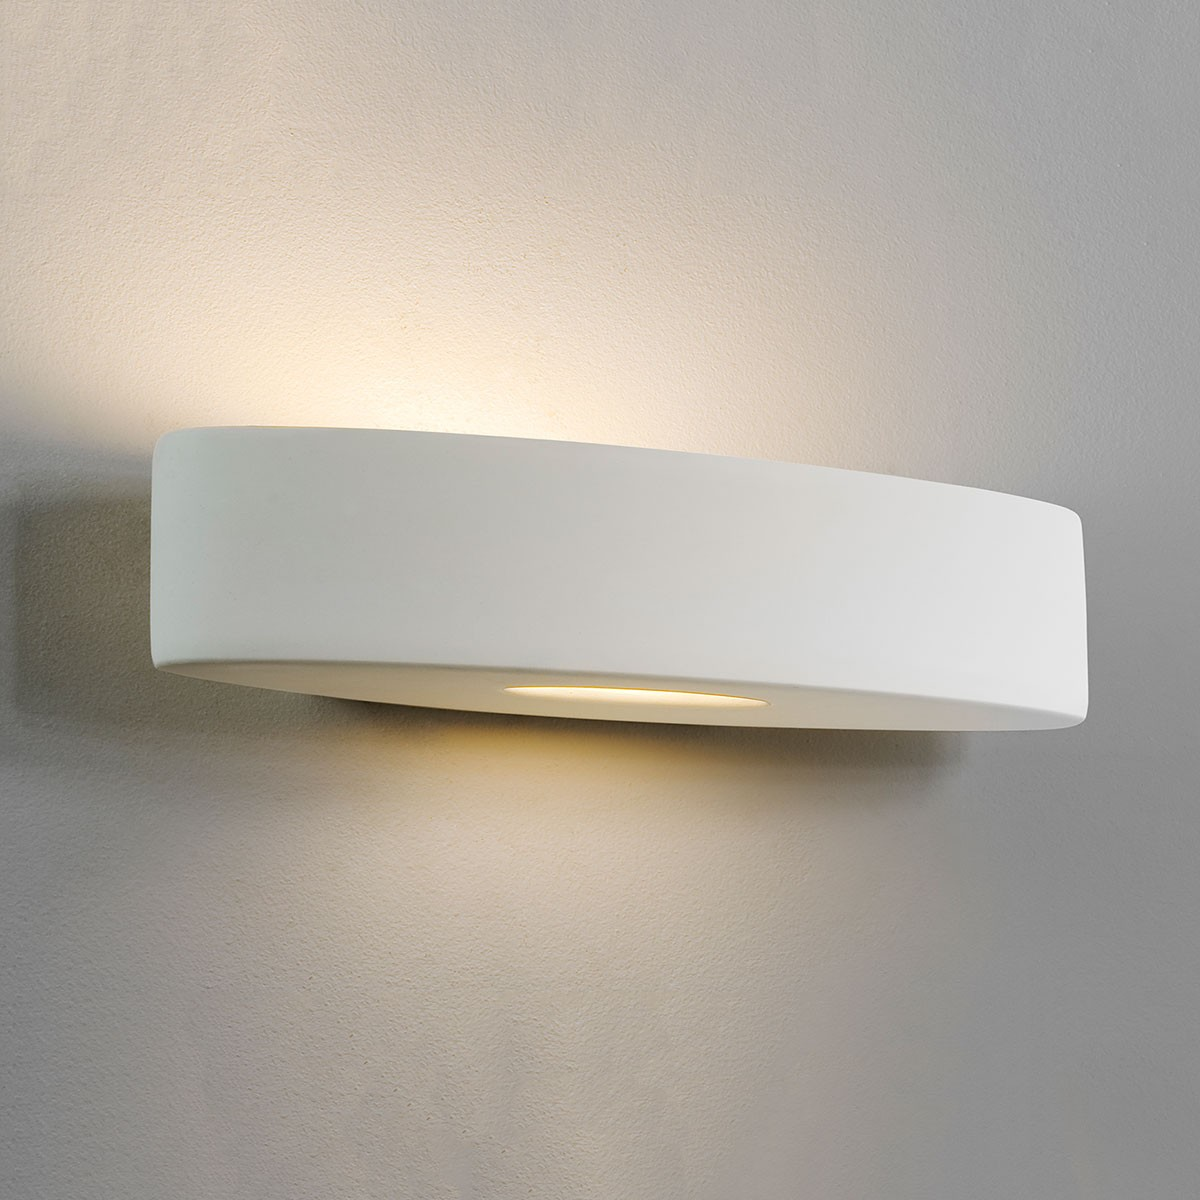 Astro Ovaro Plus 420 Ceramic Wall Light at UK Electrical Supplies.